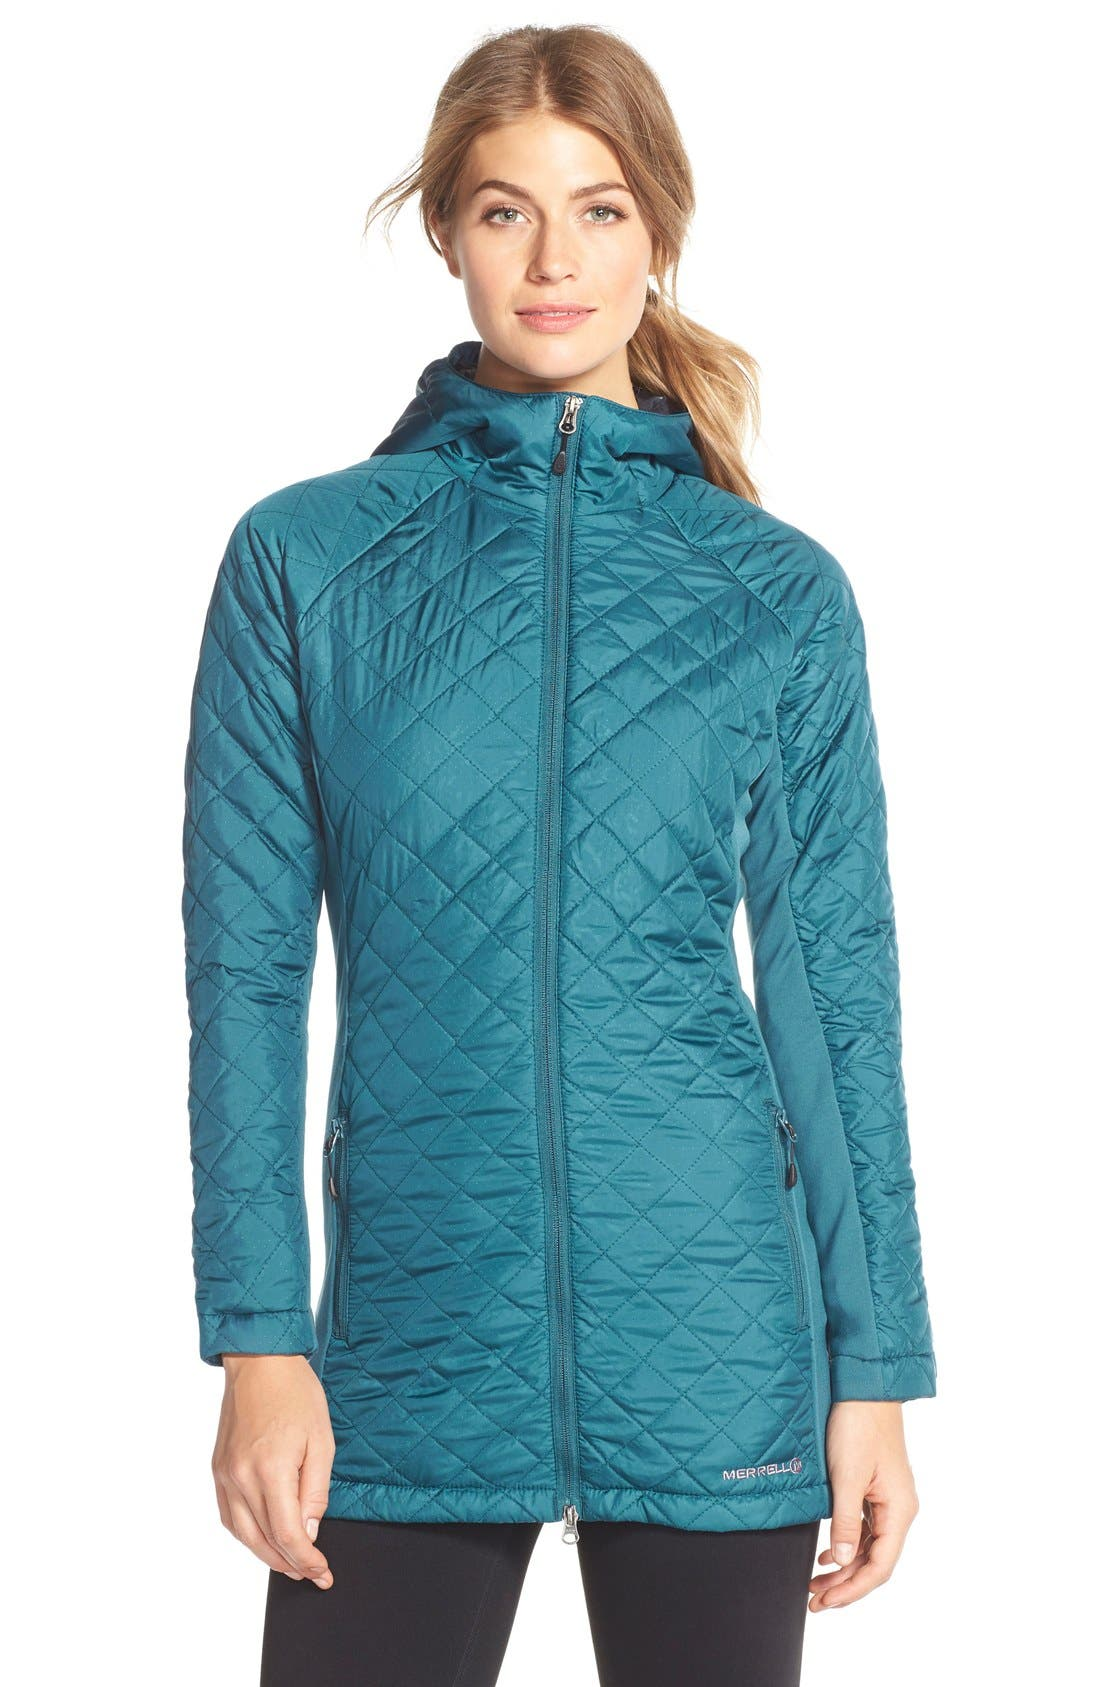 Main Image - Merrell 'Soleil Mixer' Hooded Quilted Long Coat